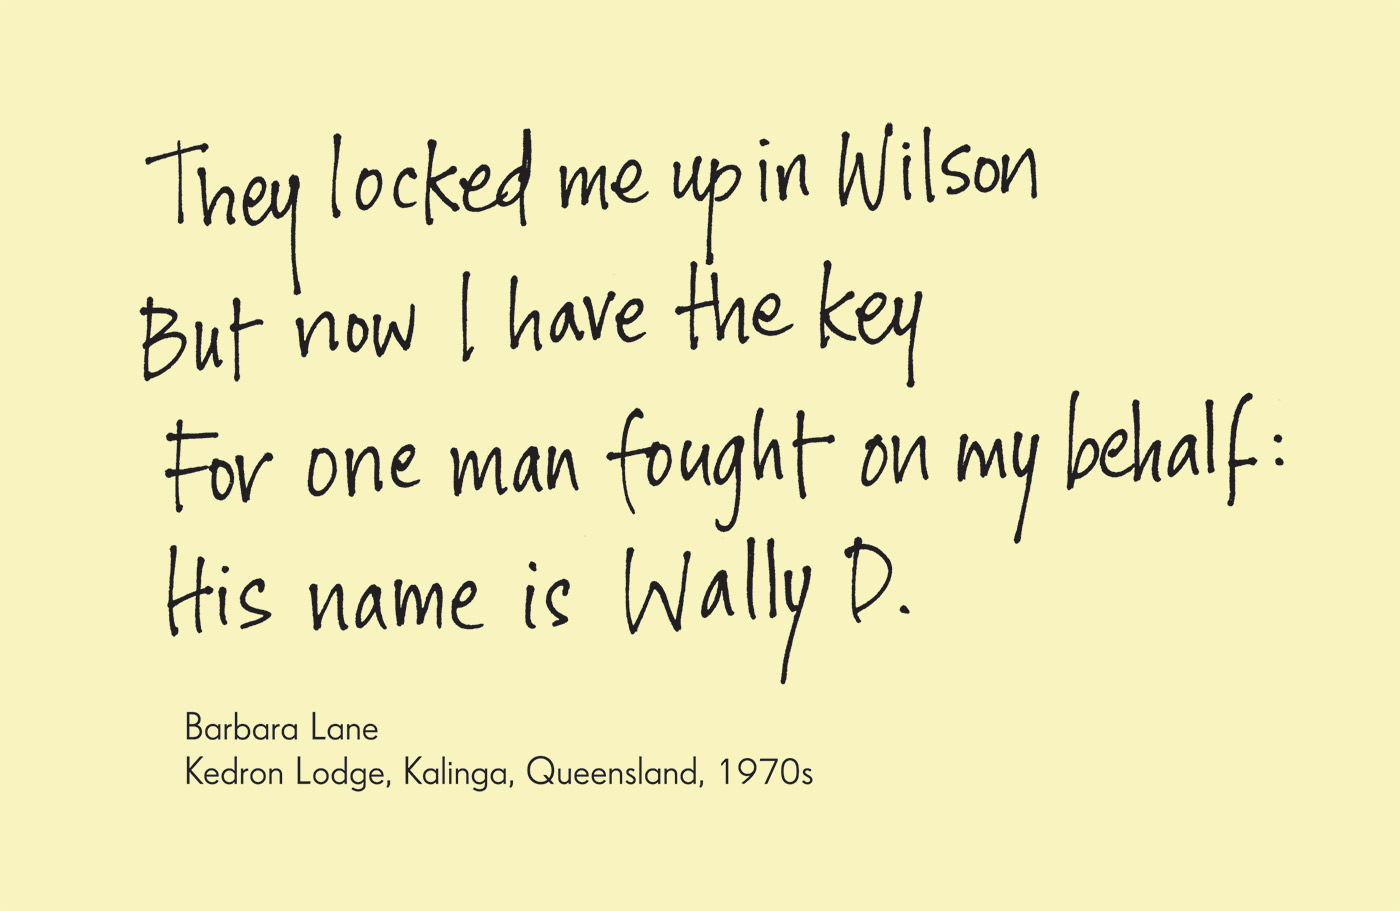 Exhibition graphic panel that reads: 'They locked me up in Wilson, But now I have the key, For one man fought on my behalf: His name is Wally D.', attributed to 'Barbara Lane, Kedron Lodge, Kalinga, Queensland, 1970s'. - click to view larger image